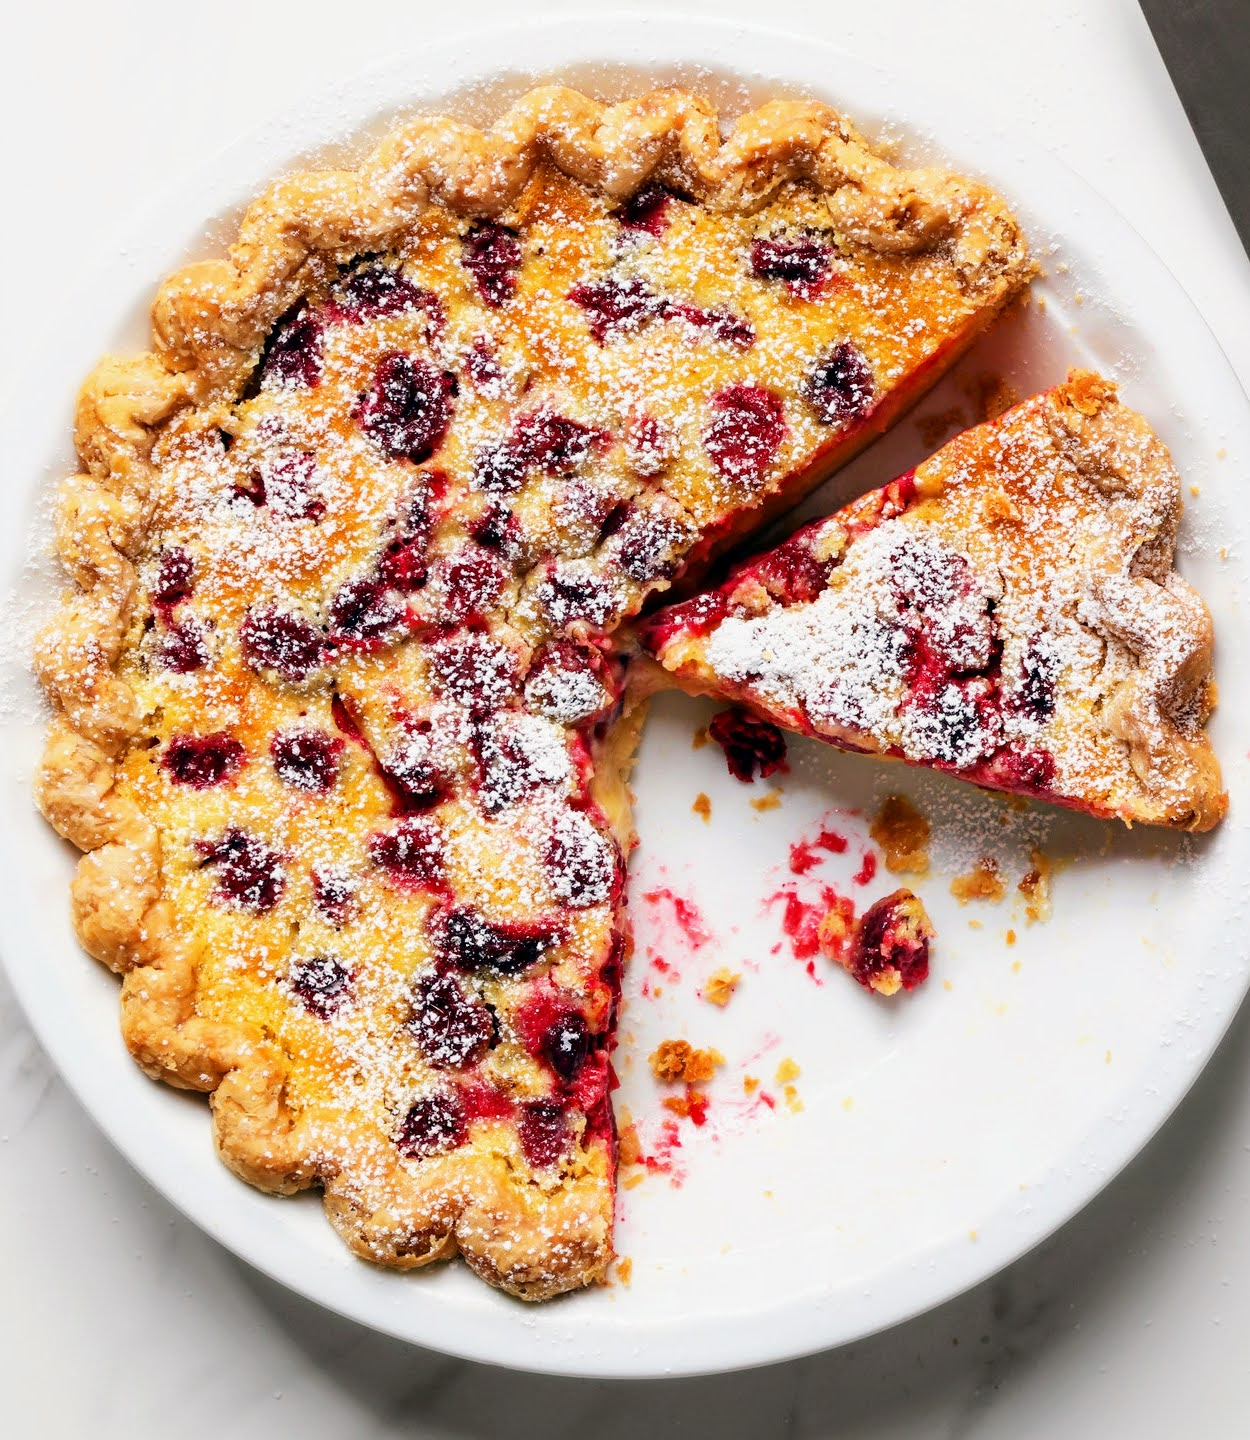 Citrus Custard and Cranberry Pie (GF Option Available) (Serves 8)